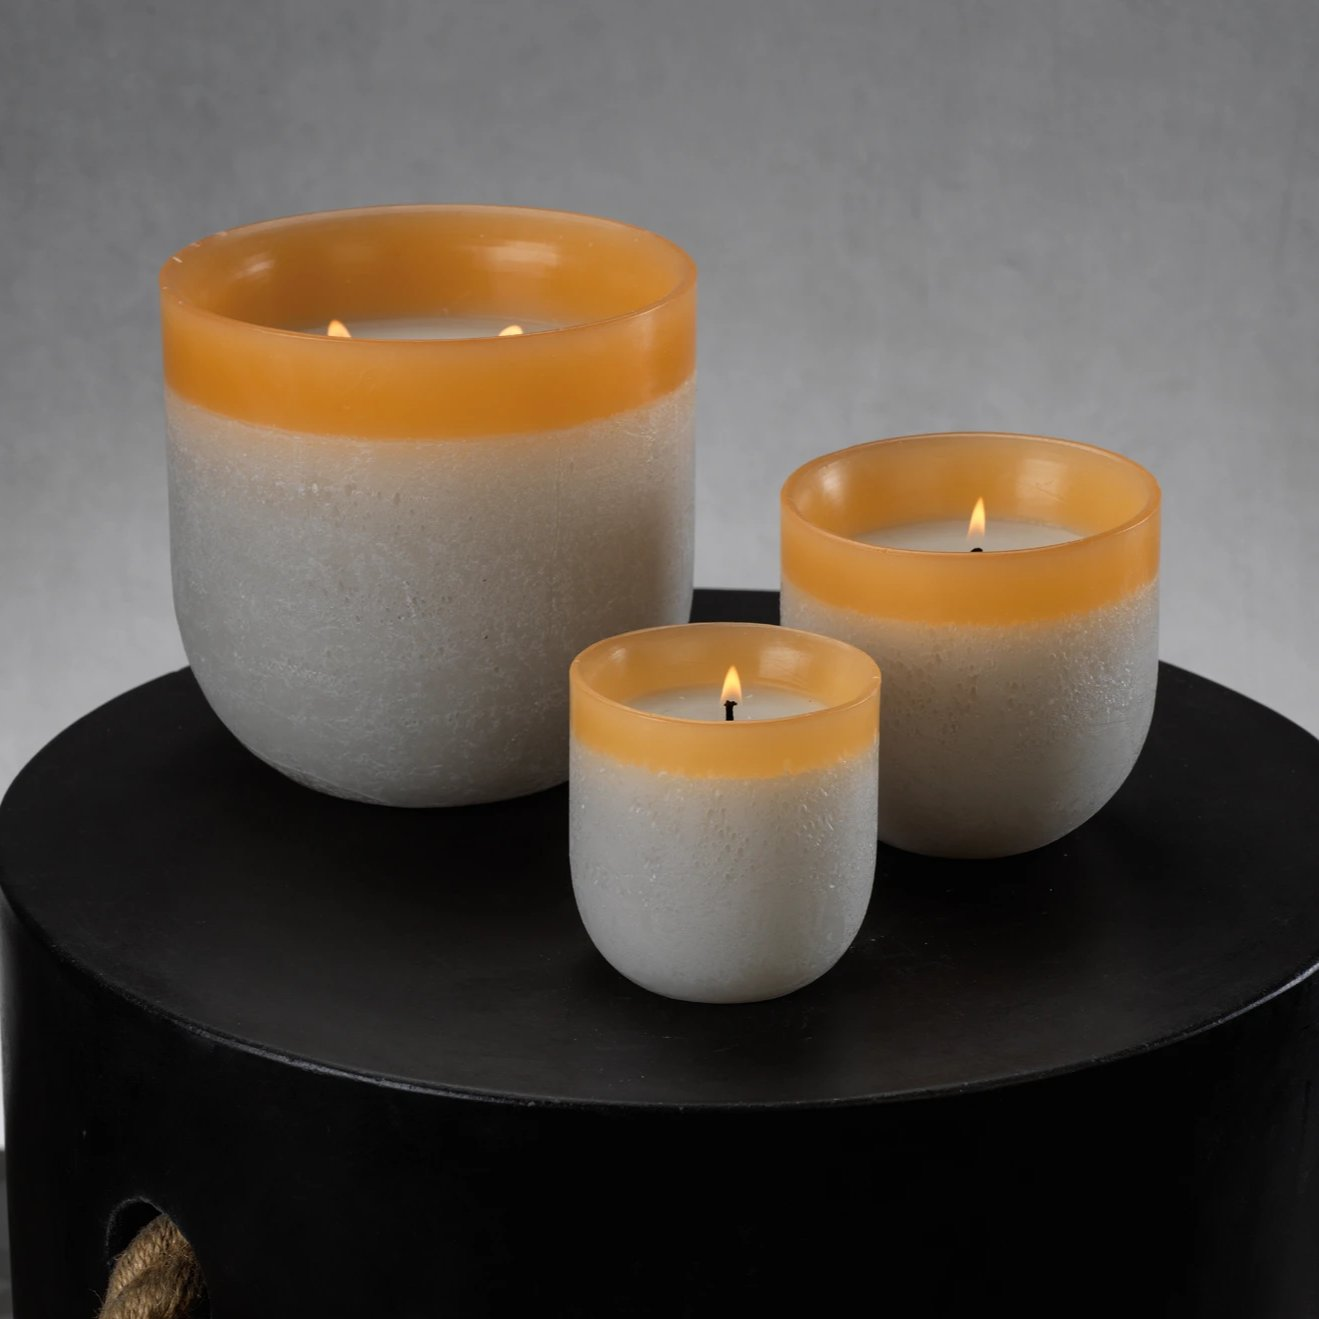 Shoreline Scented Candle - Coconut Mango / Orange